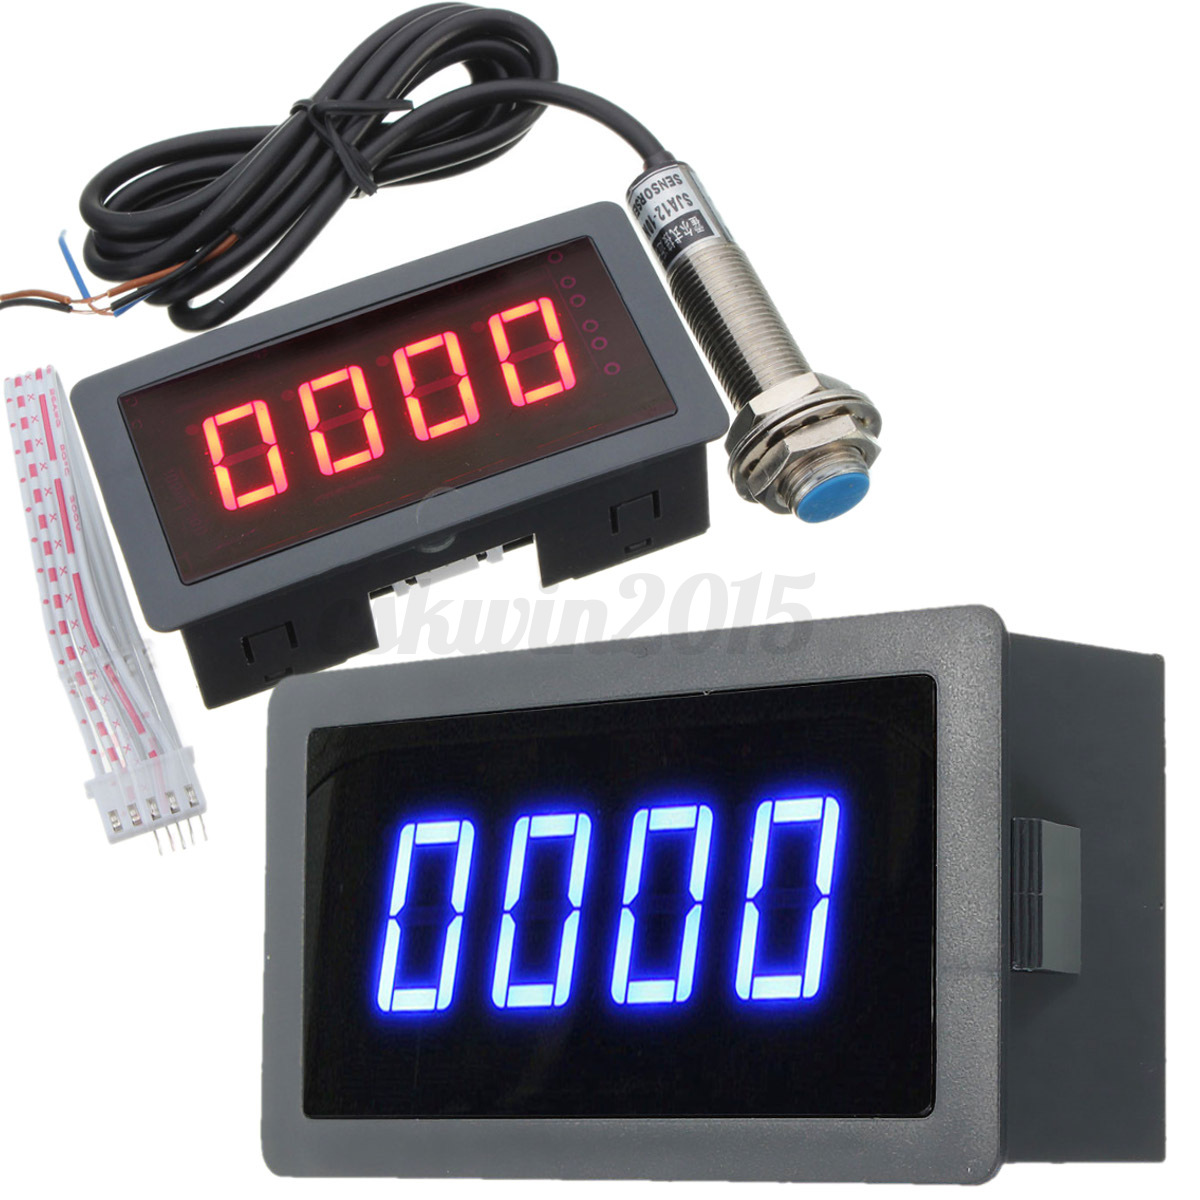 hight resolution of 4 digital led tachometer rpm speed meter hall proximity switch detail image led tachometer wiring diagram